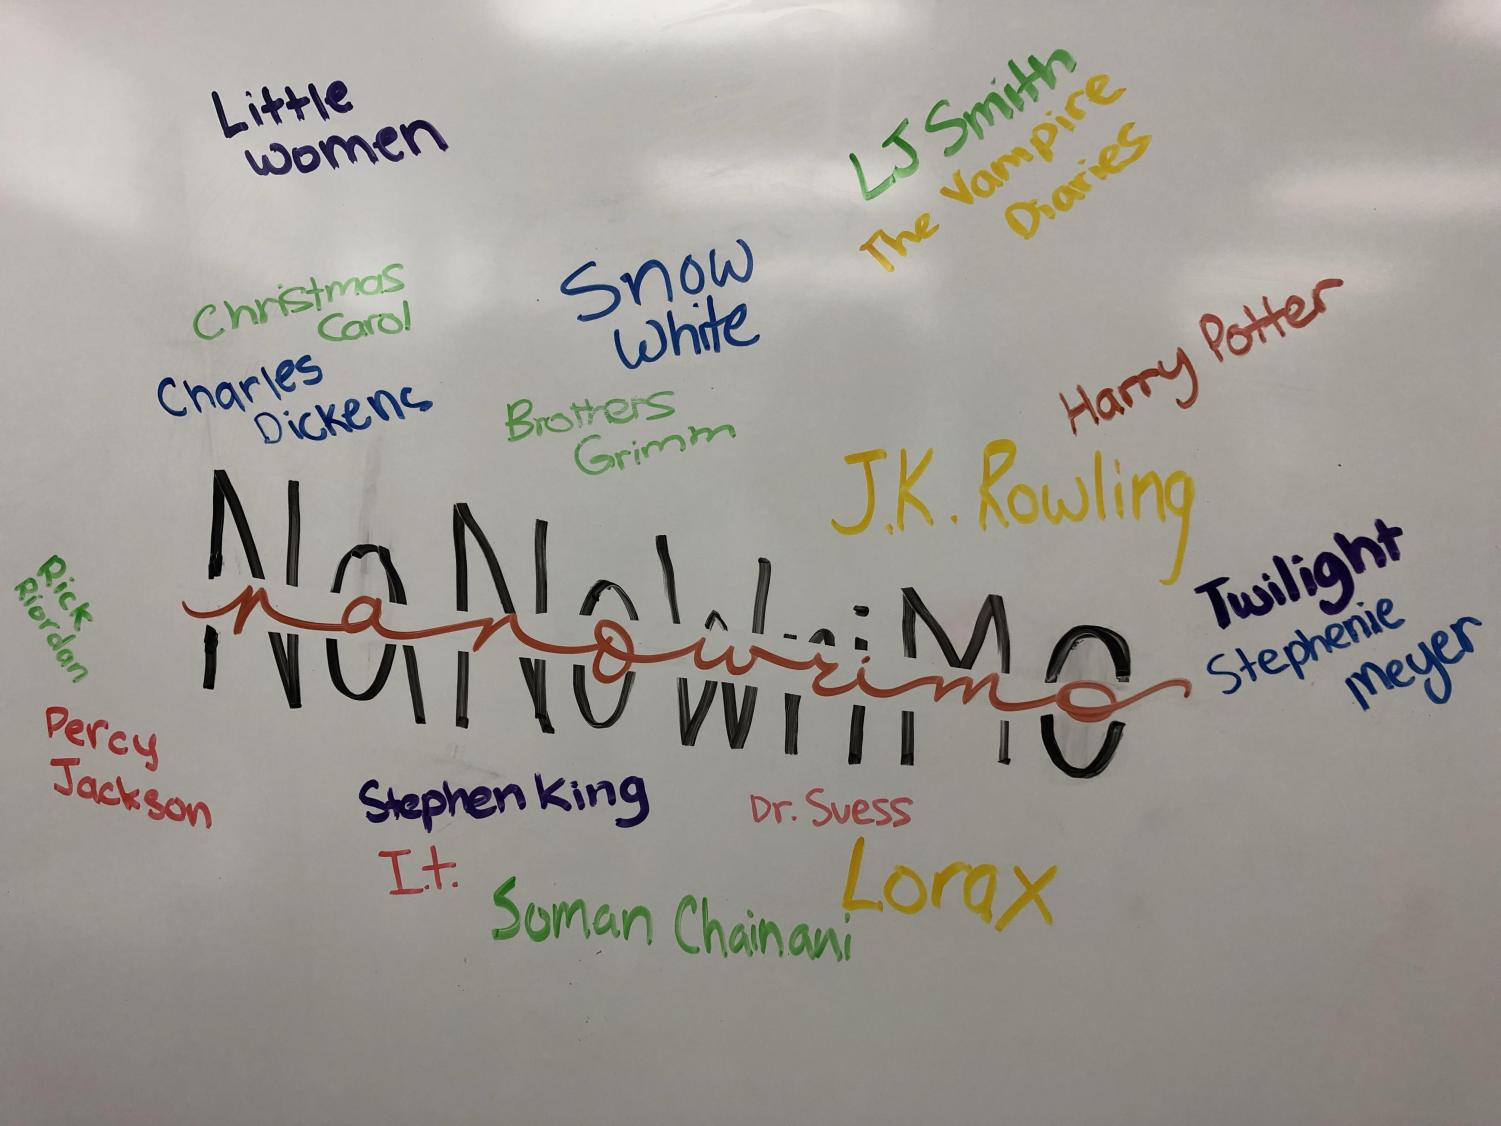 The logo of NaNoWriMo with the names of popular authors and books by Kraemer students Mia R, Anya D, and Jacqueline C.